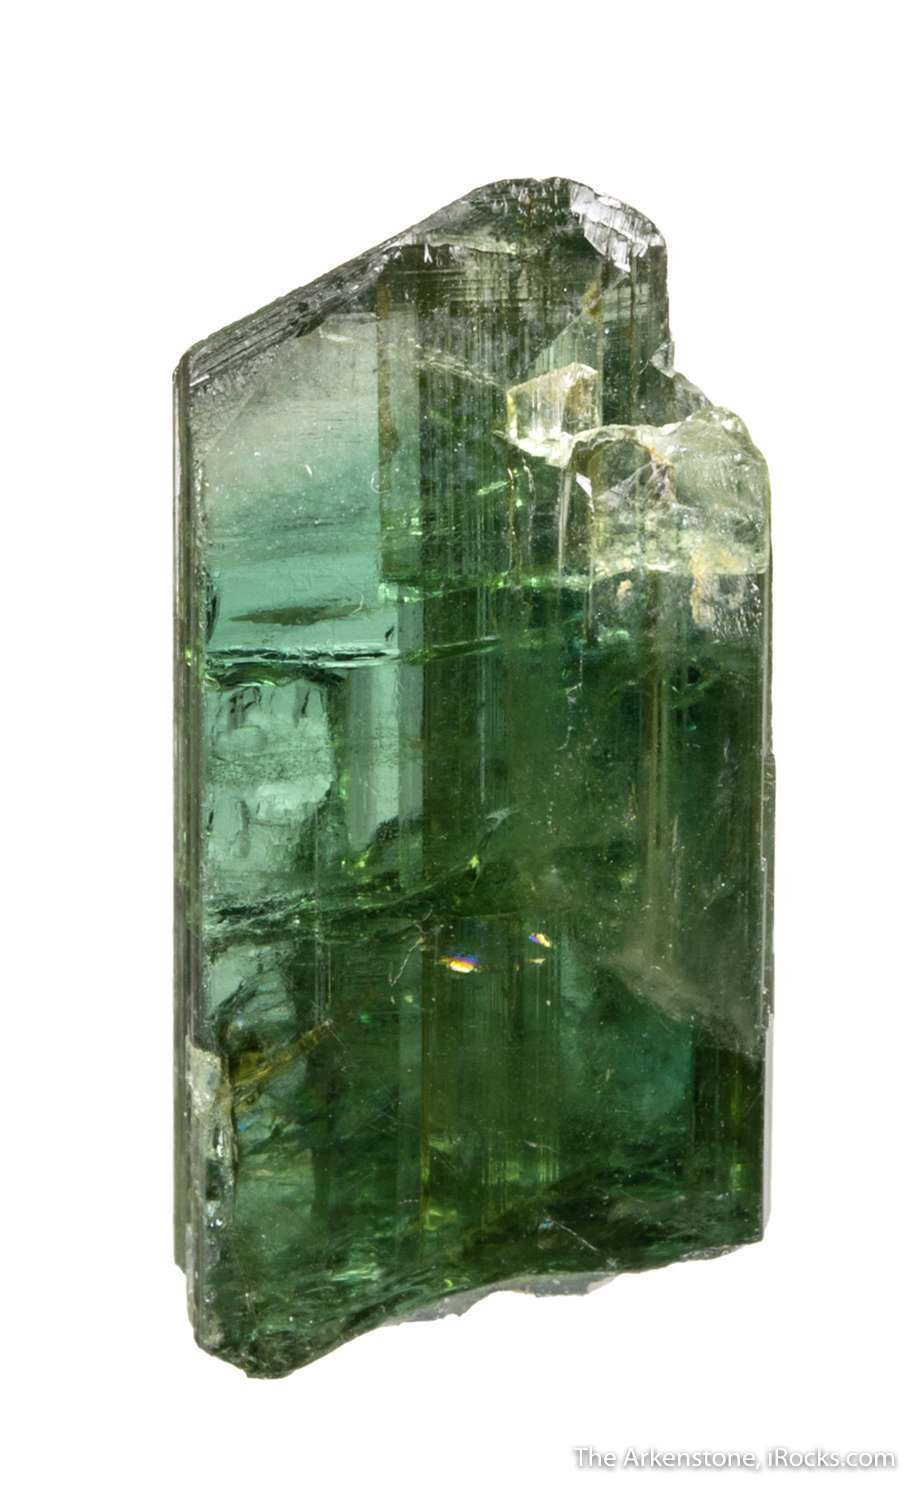 This glassy gemmy zoisite crystal exhibits beautiful light forest